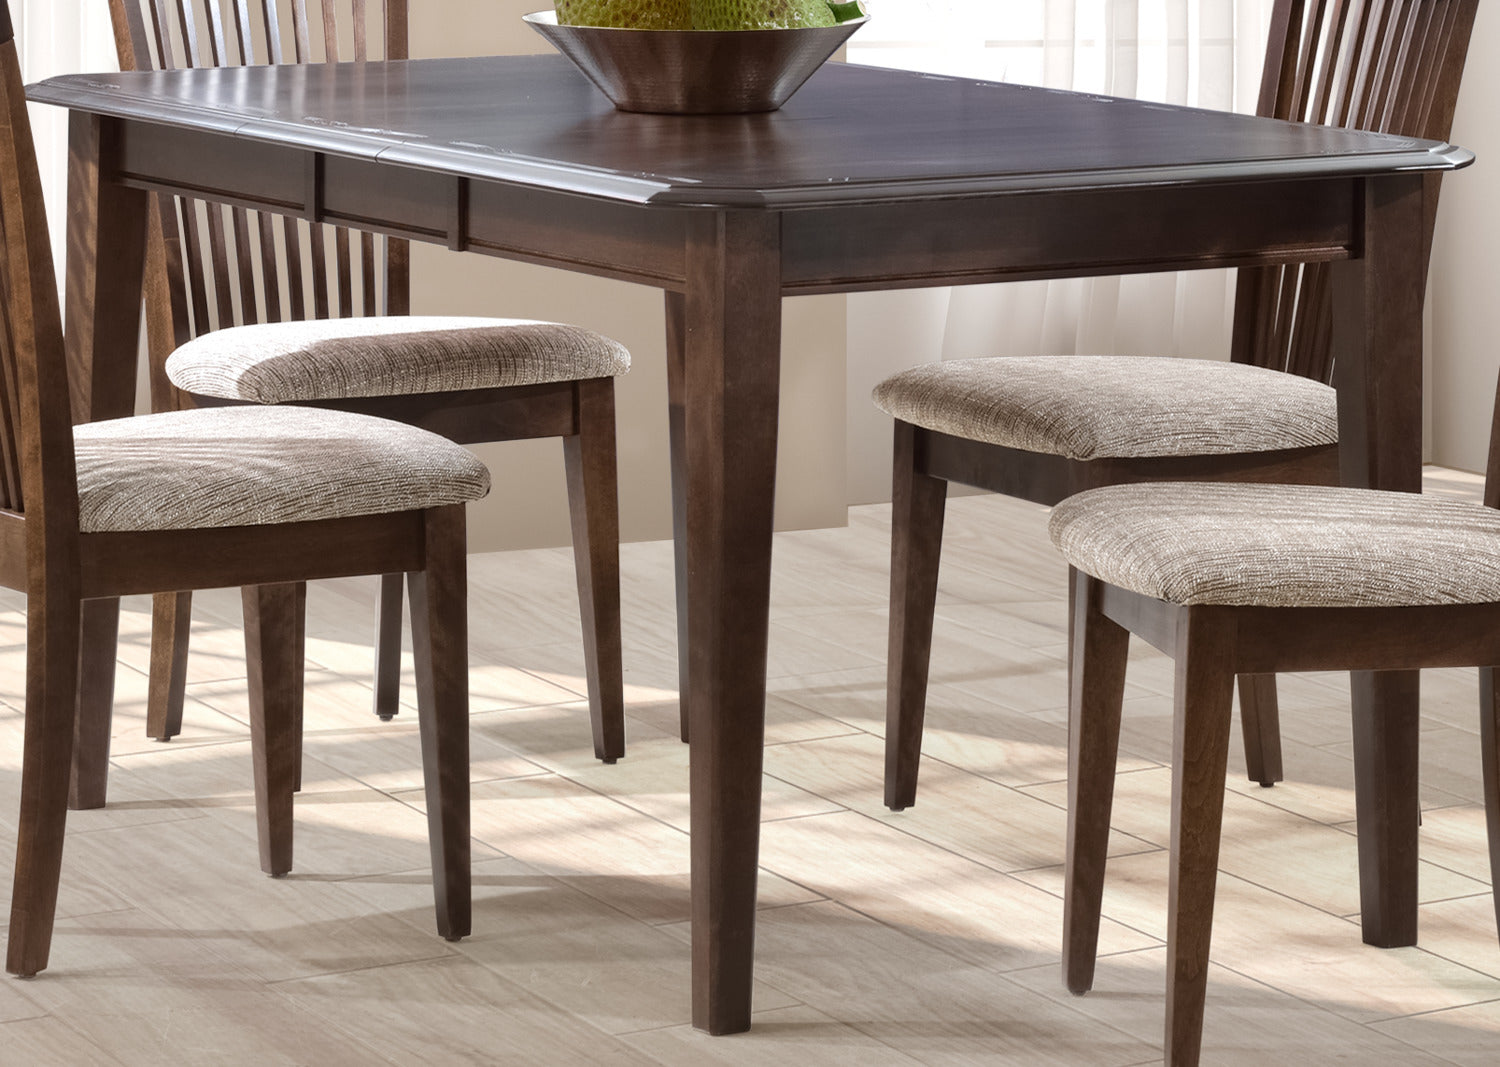 Granby Dining Table